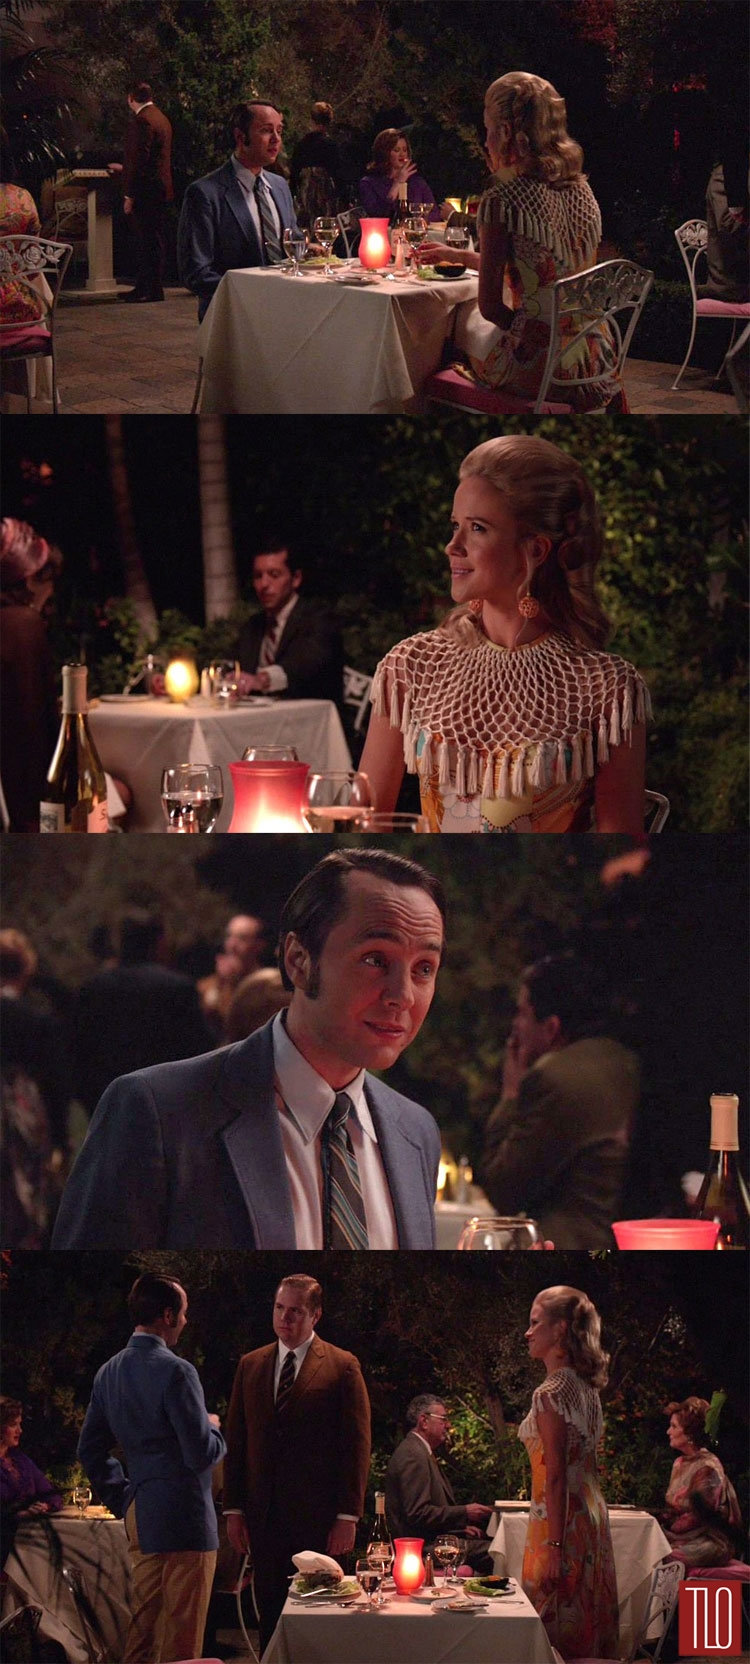 Mad-Men-Mad-Style-Season-7-Episode-4-Tom-Loenzo-Site-TLO (1)